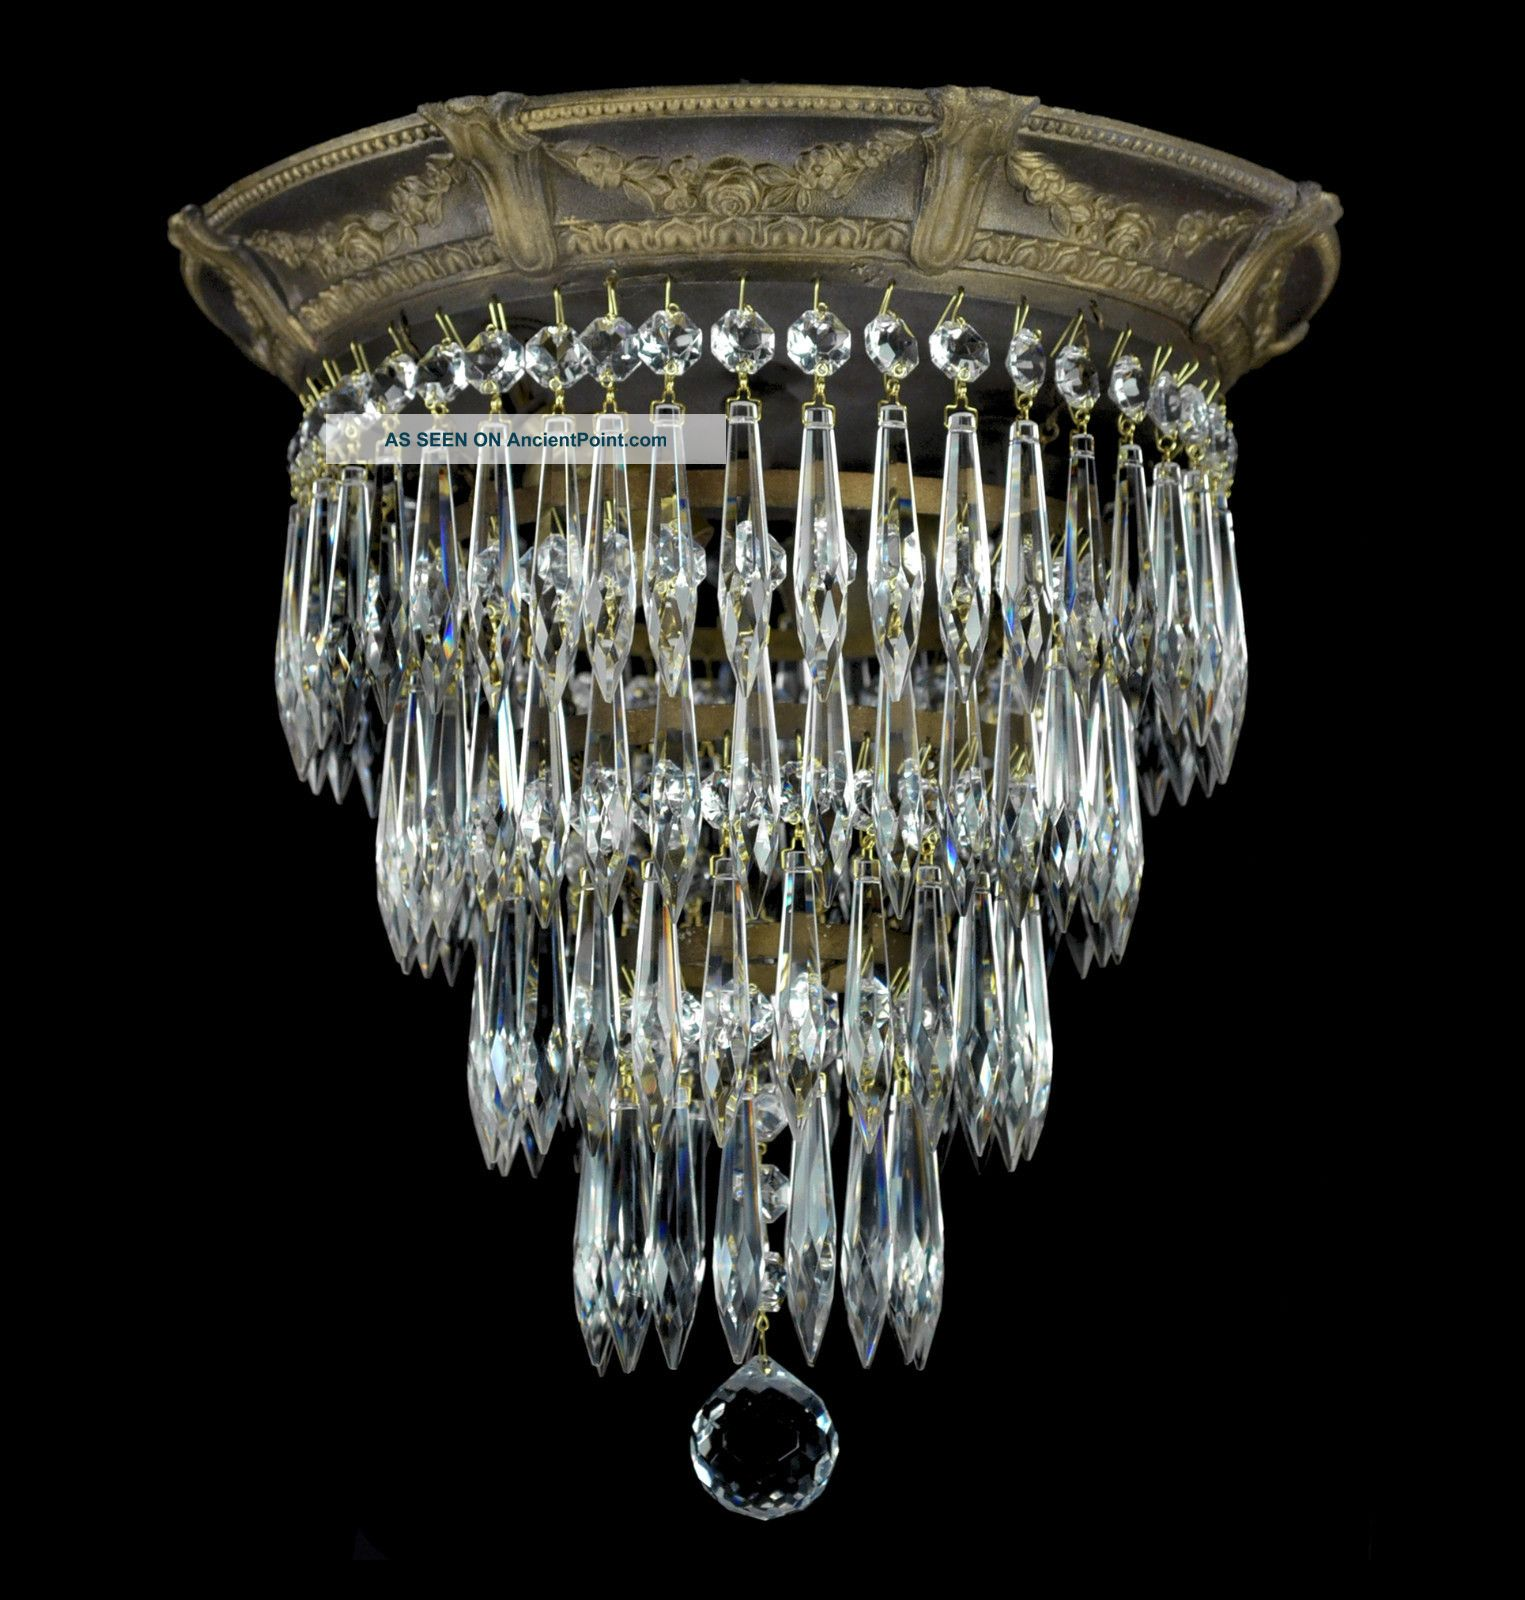 Antique wedding cake flush mounted crystal chandelier gold bronze antique wedding cake flush mounted crystal chandelier gold bronze finish light arubaitofo Choice Image